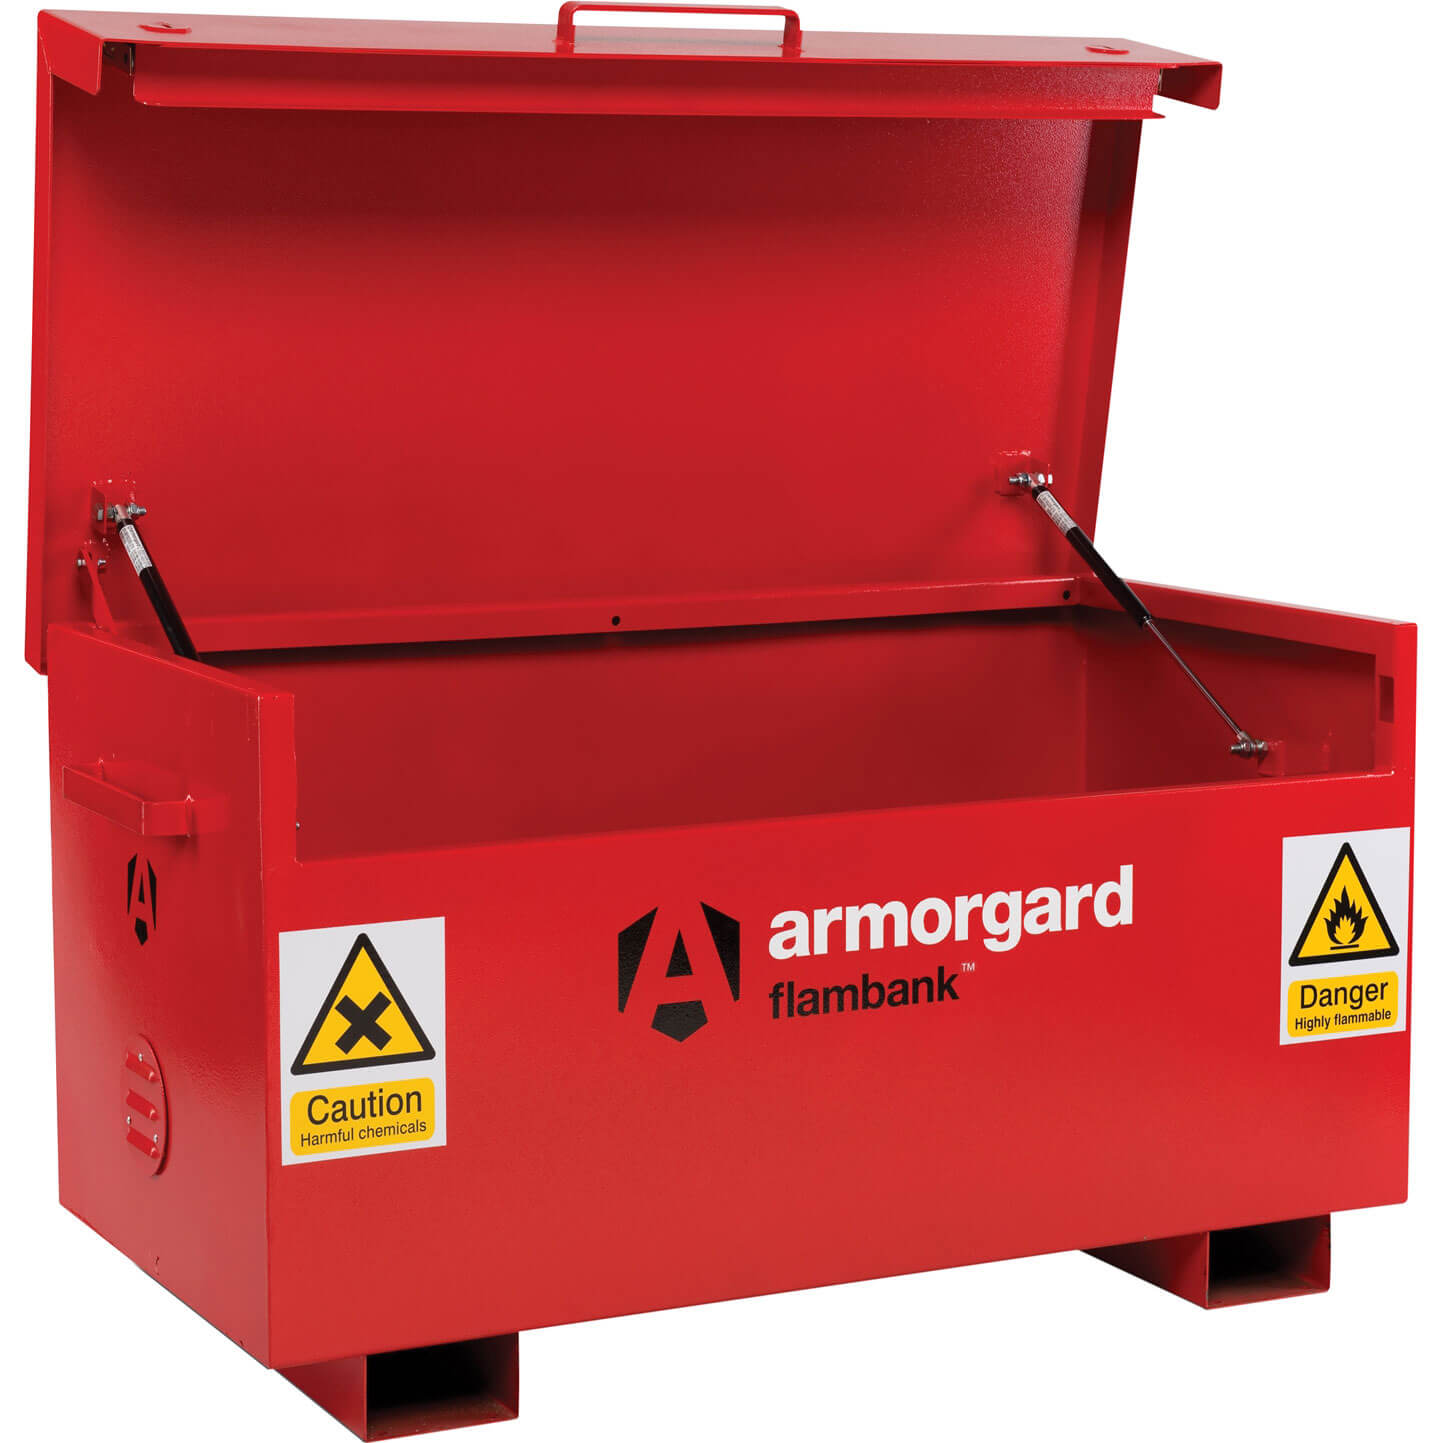 Armorgard Flambank Chemical & Flammables Storage Chest 127.5cm x 67.5cm x 66.5cm